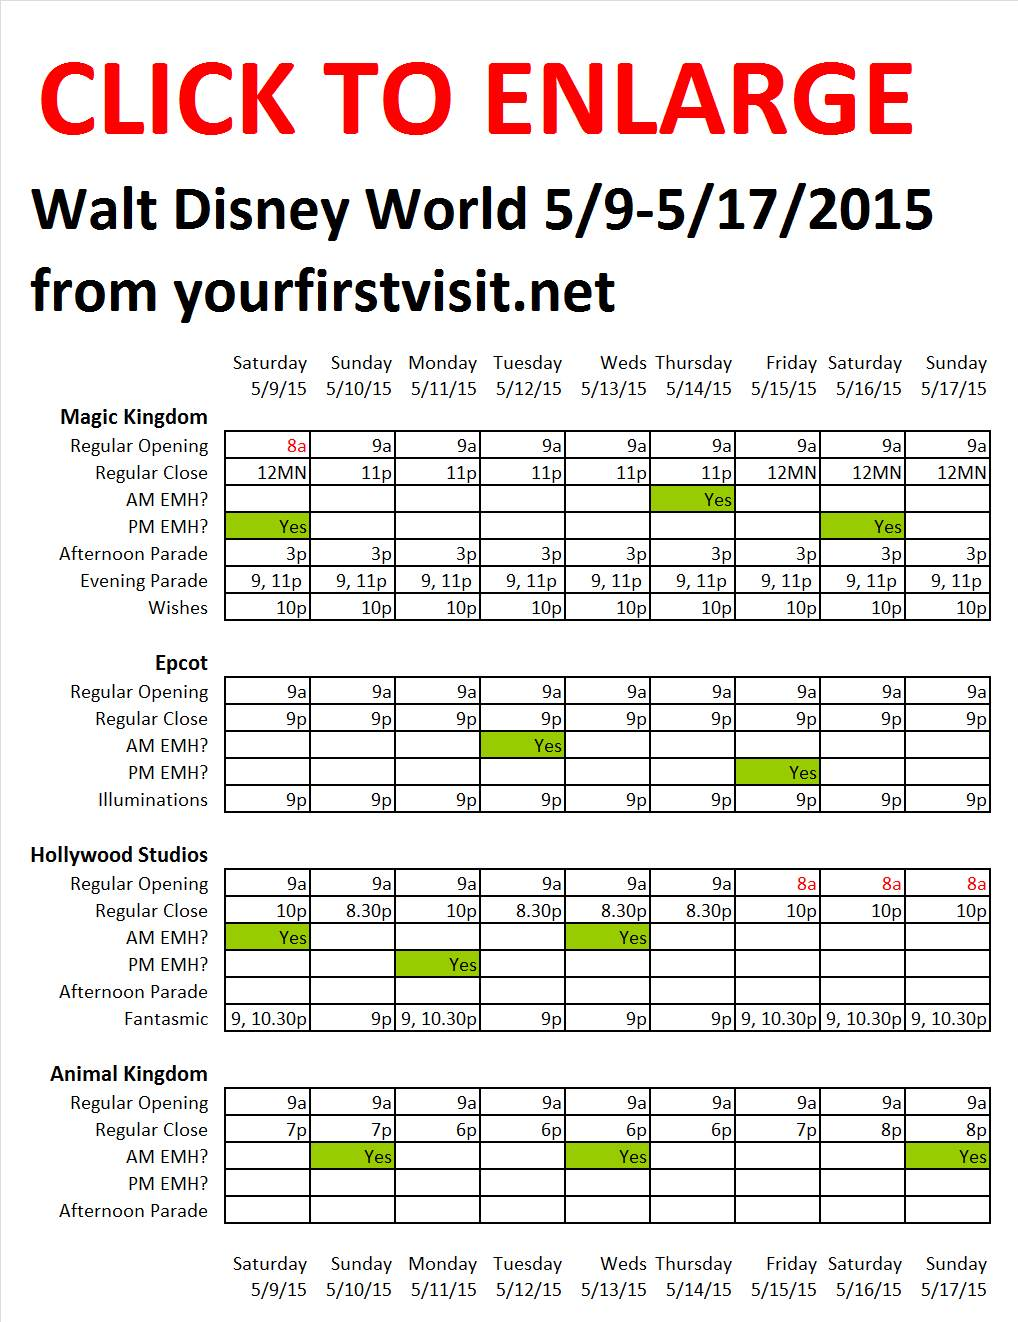 Disney World 5-9 to 5-17-2015 from yourfirstvisit.net